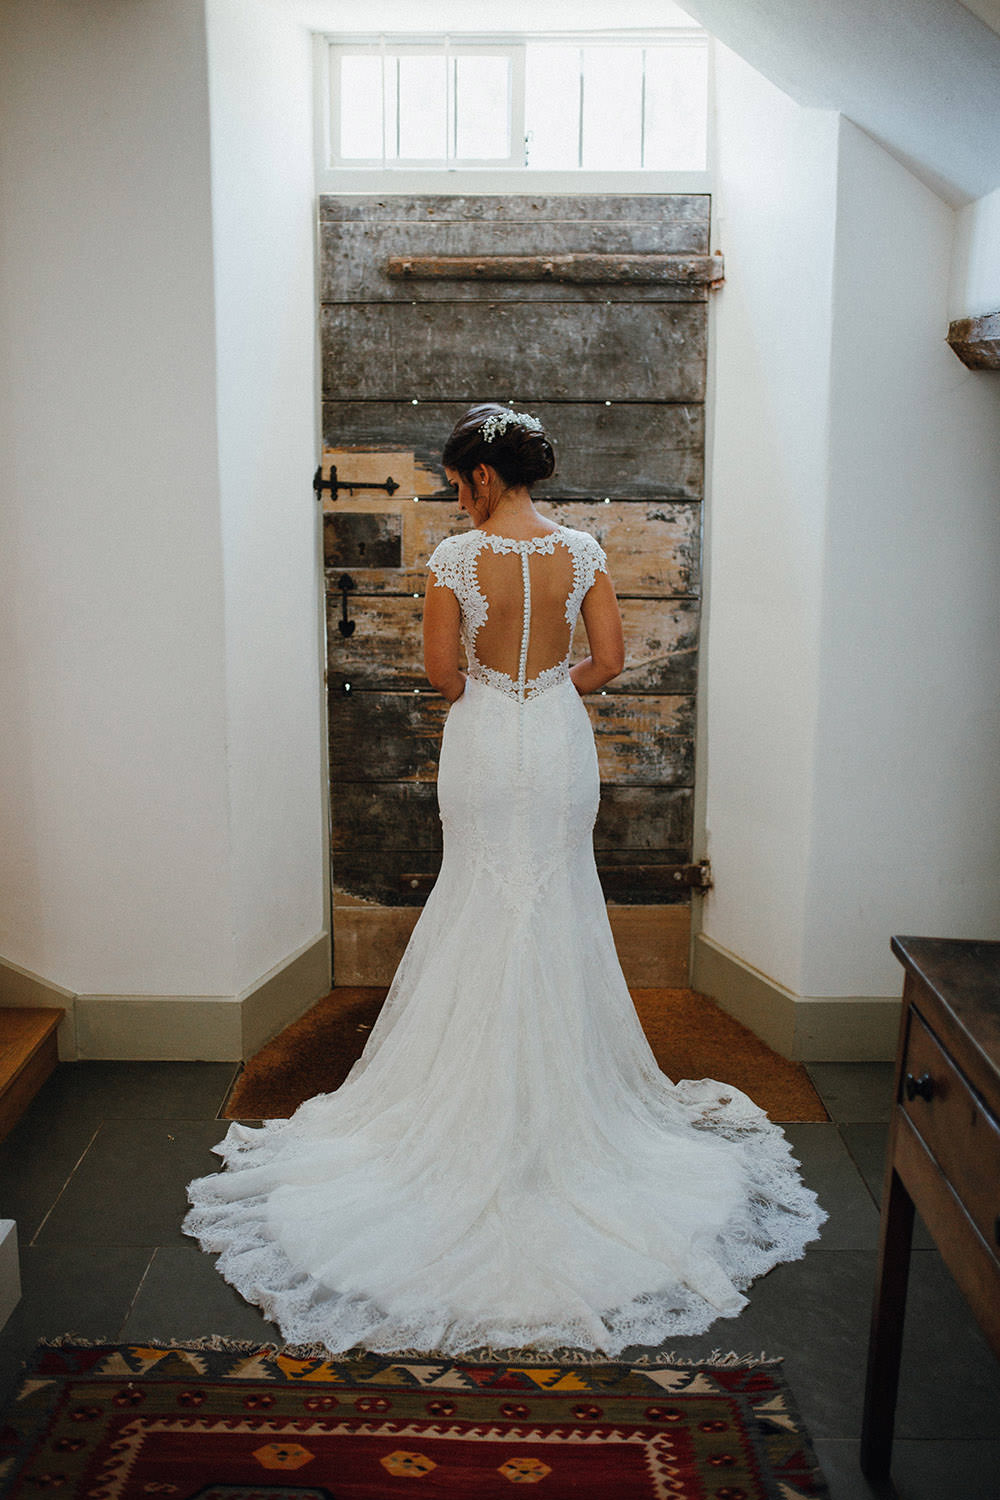 Dress Gown Bride Bridal Lace Illusion Back Buttons Sleeves Train Lillian West Pimhill Barn Wedding Shrophire Leah Lombardi Photography